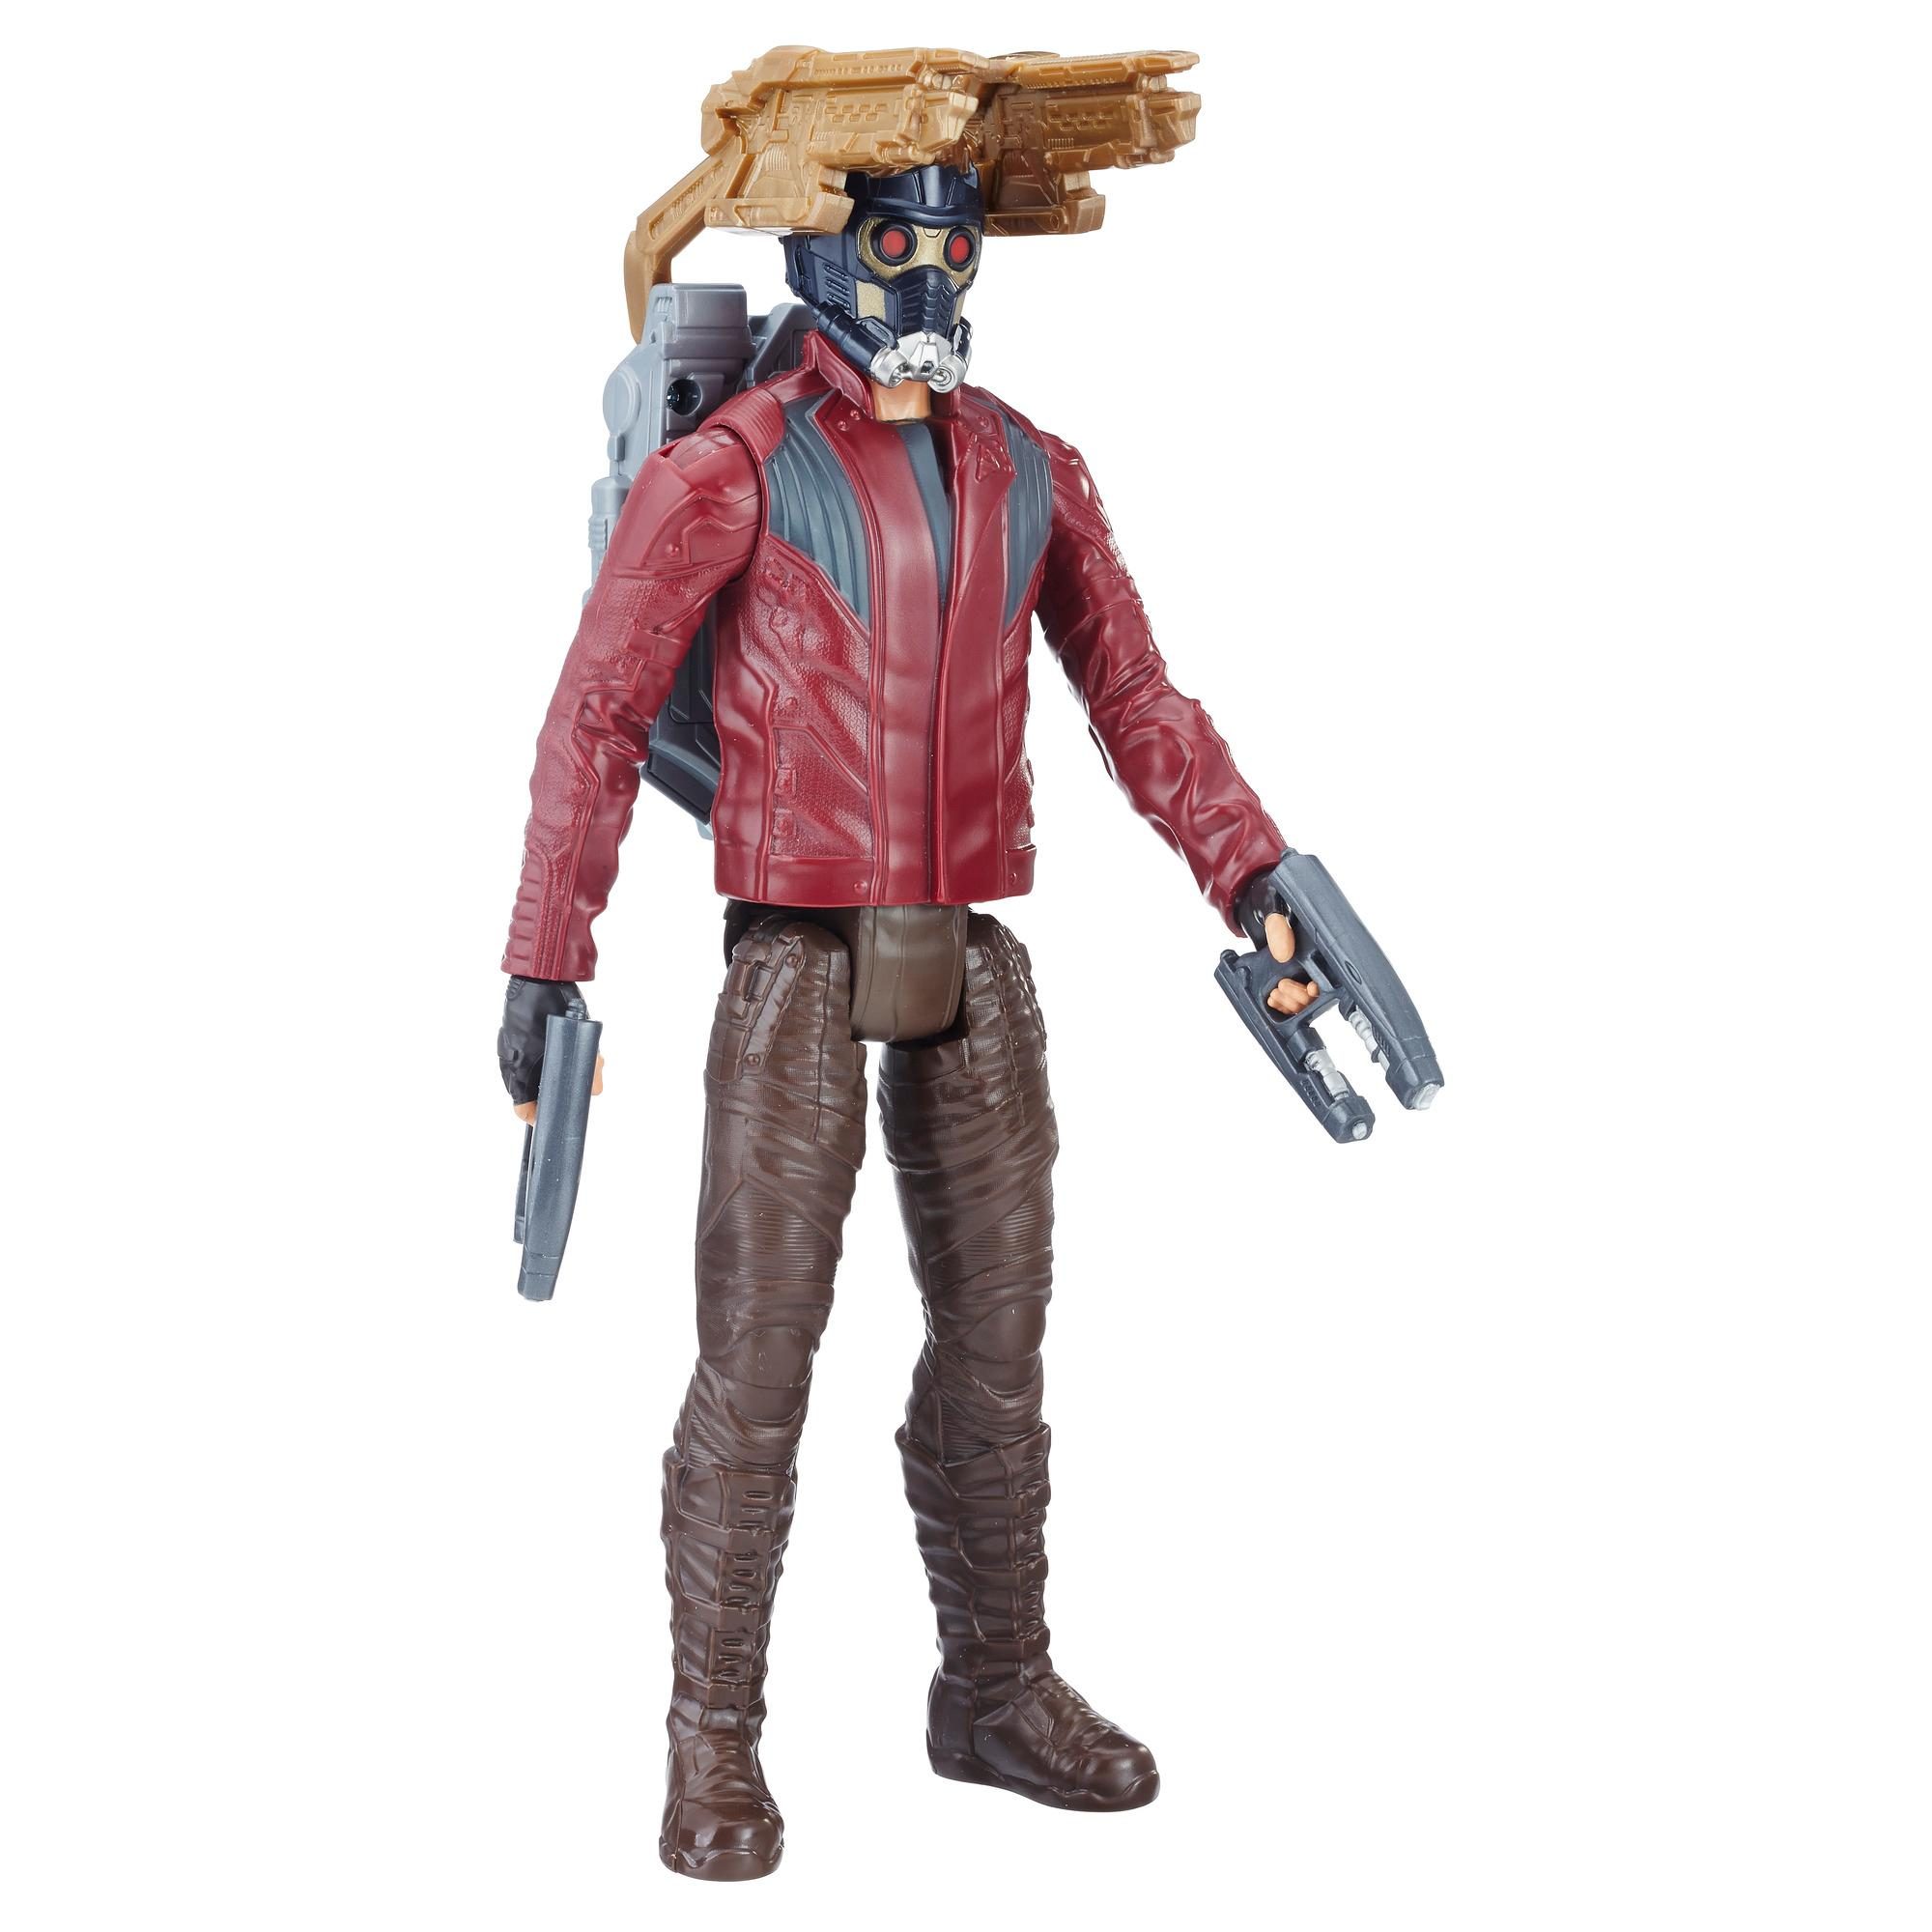 Avengers: Infinity War - Star-Lord Titan Hero Power FX (Personaggio 30cm, Action Figure)